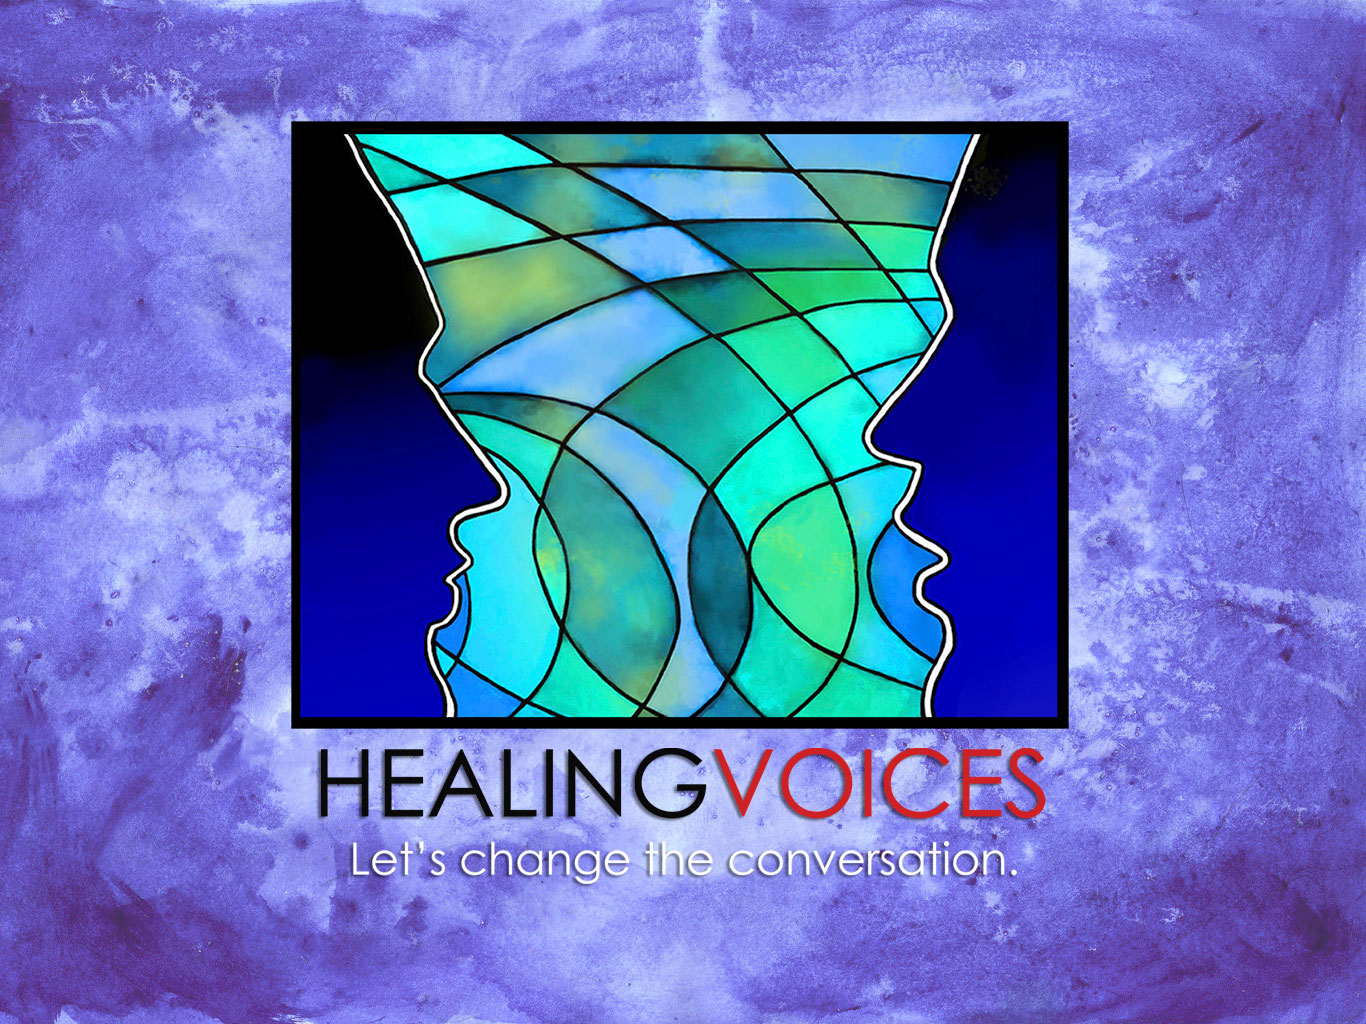 'Healing Voices' with Mental Health Panel Discussion